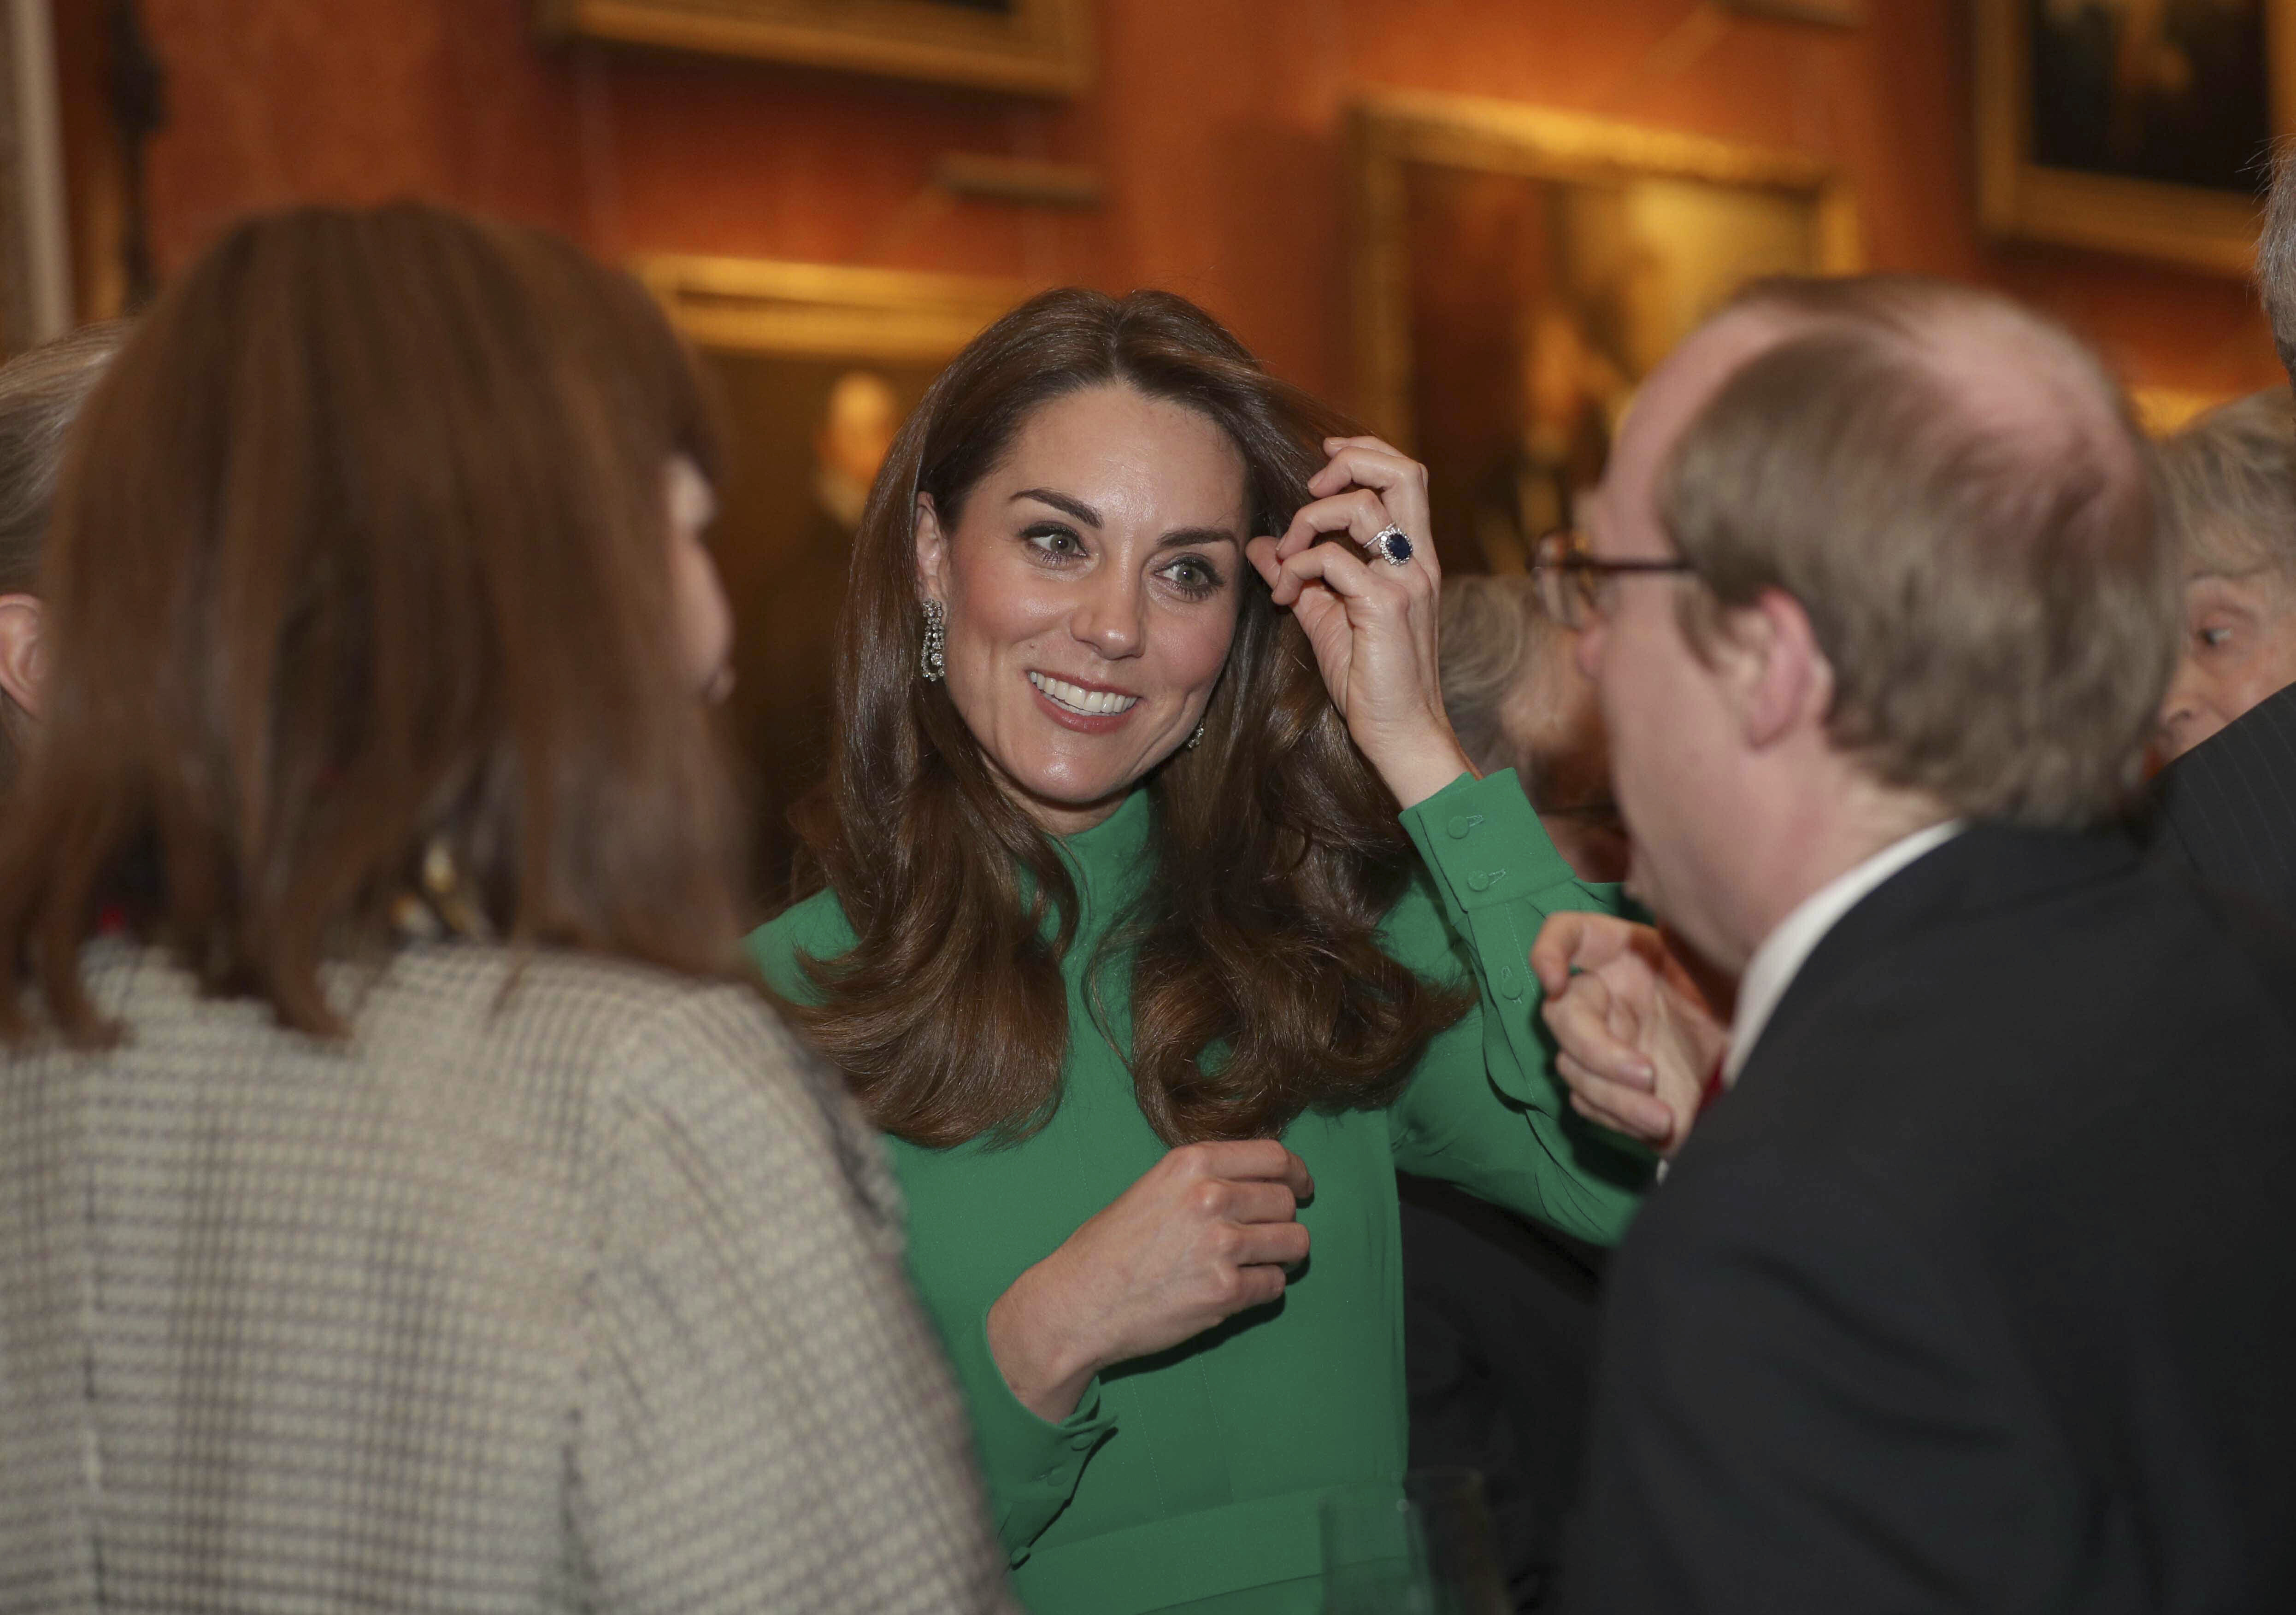 Photo by: KGC-512/STAR MAX/IPx 2019 12/3/19 The Queen, accompanied by other Members of the Royal Family, hosts a reception for NATO leaders, spouses or partners, and delegations, at Buckingham Palace in London, England. Here, Catherine, Duchess of Cambridge